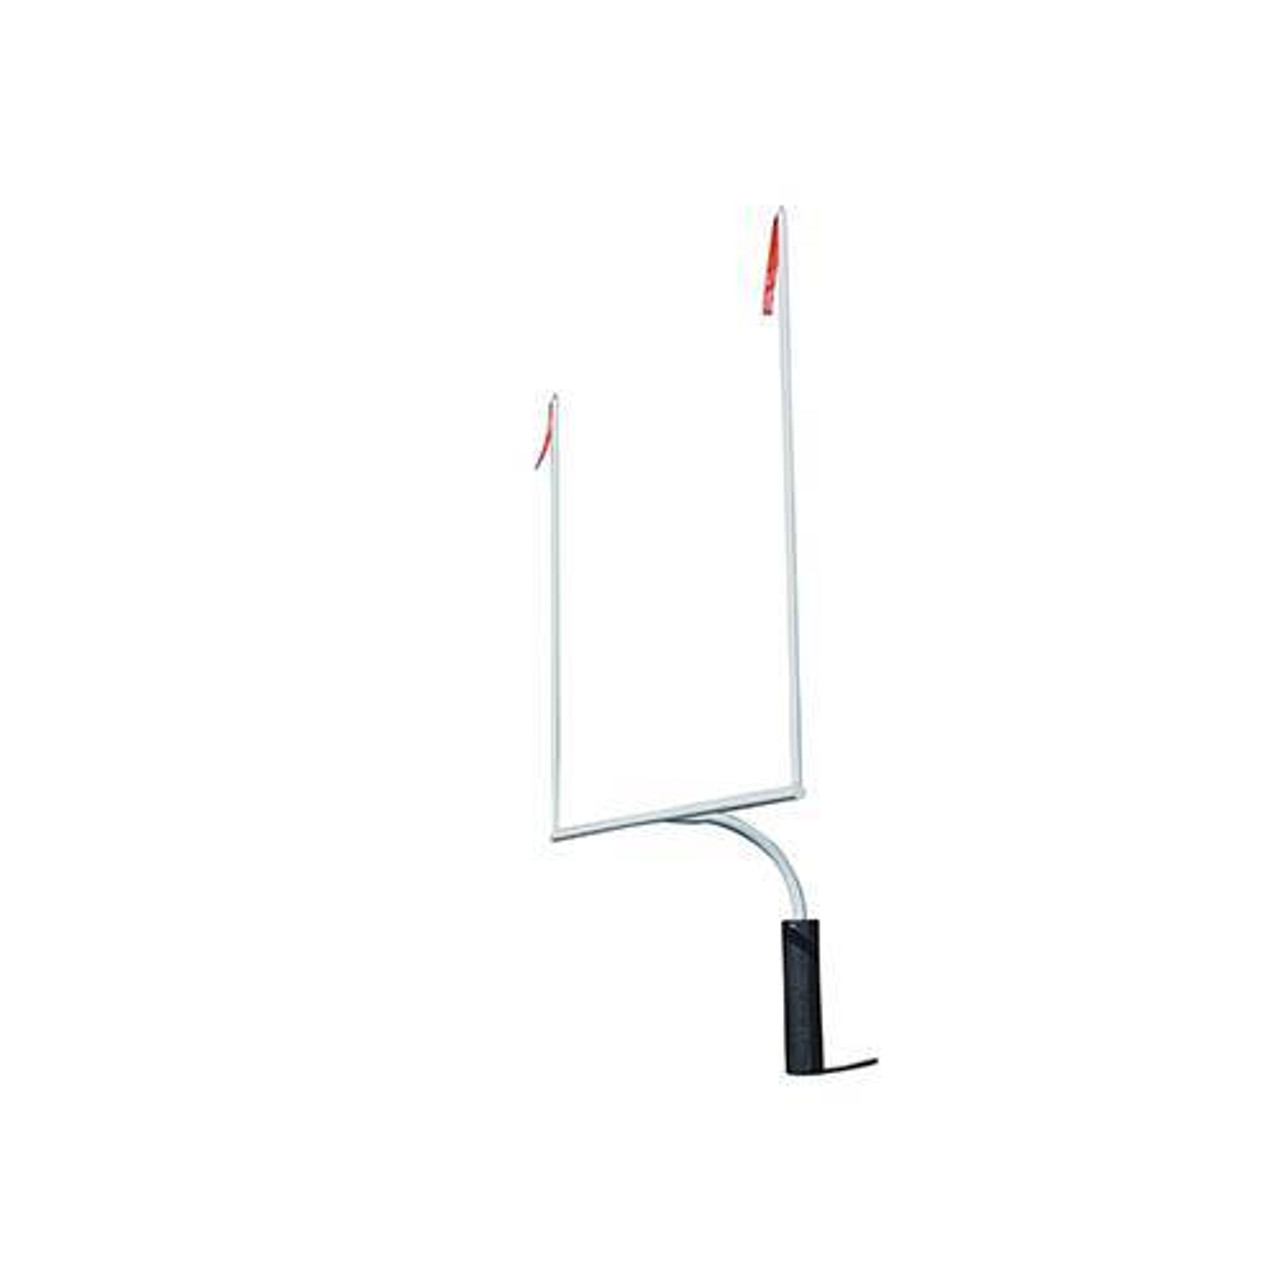 H.S. Football Goalposts with 20' Upright - White